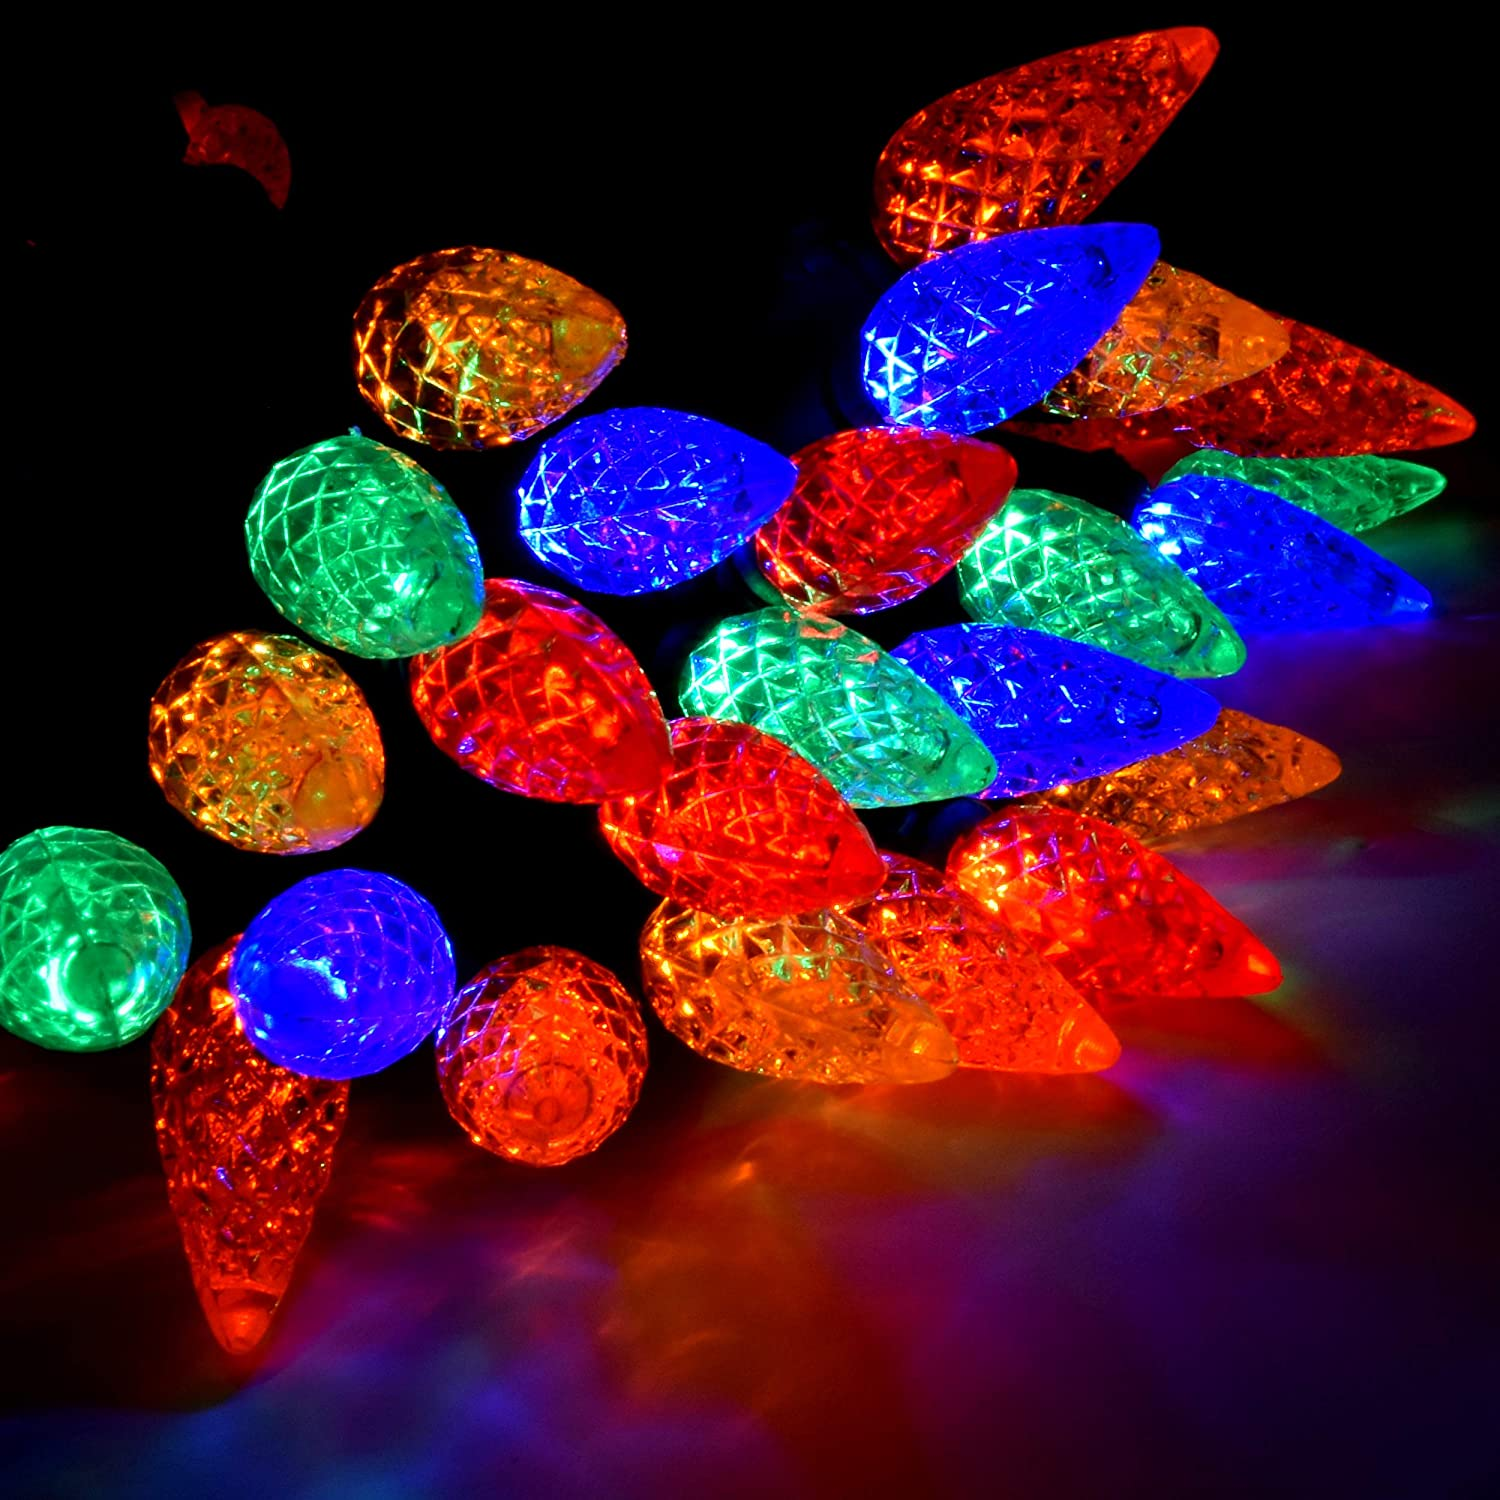 UL Listed Professional Grade Holiday Essence Led Christmas Multi Color Lights 60 C6 Faceted LED Decorative String Light Set Indoor and Outdoor Use Energy Efficient LED Bulbs with Green Wire